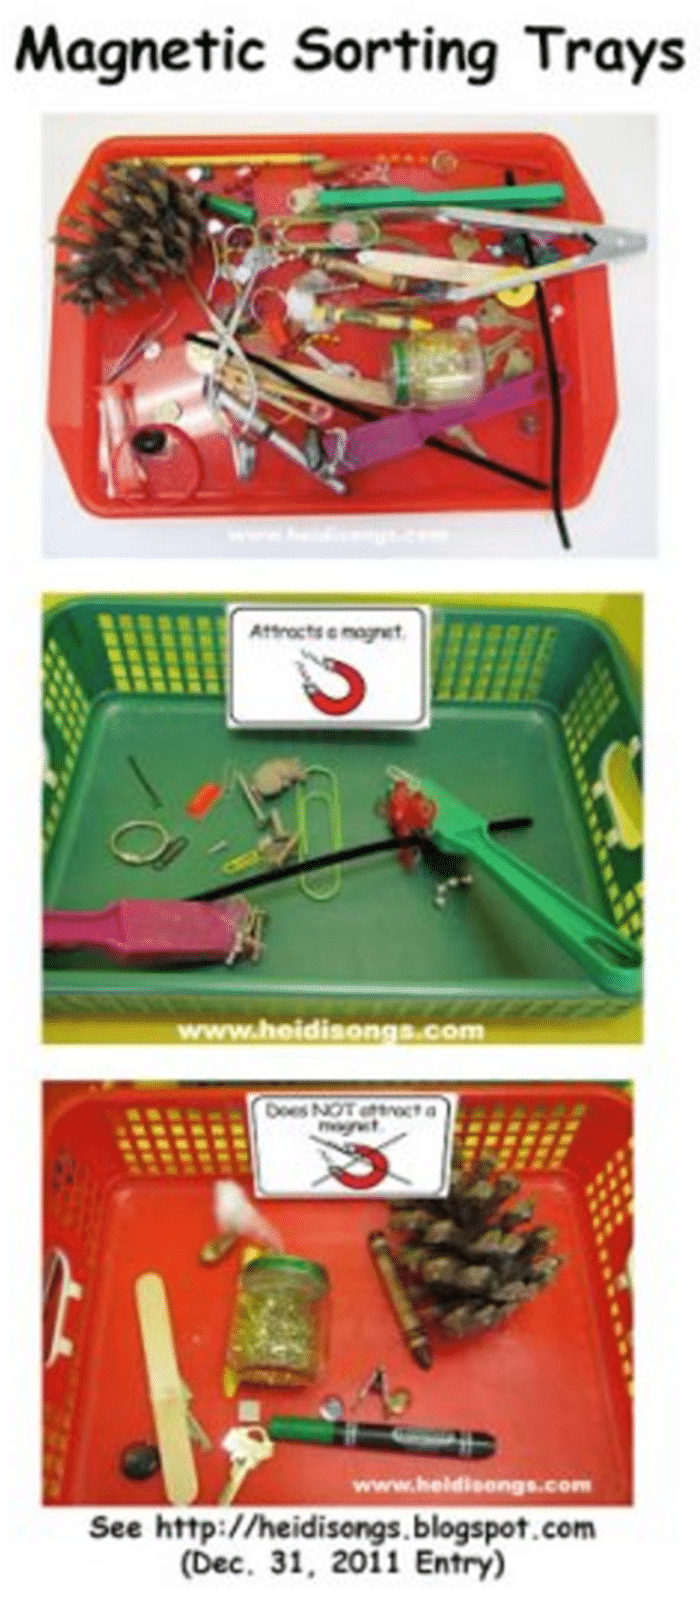 Kindergarten Science Center - What is magnetic and what is not magnetic